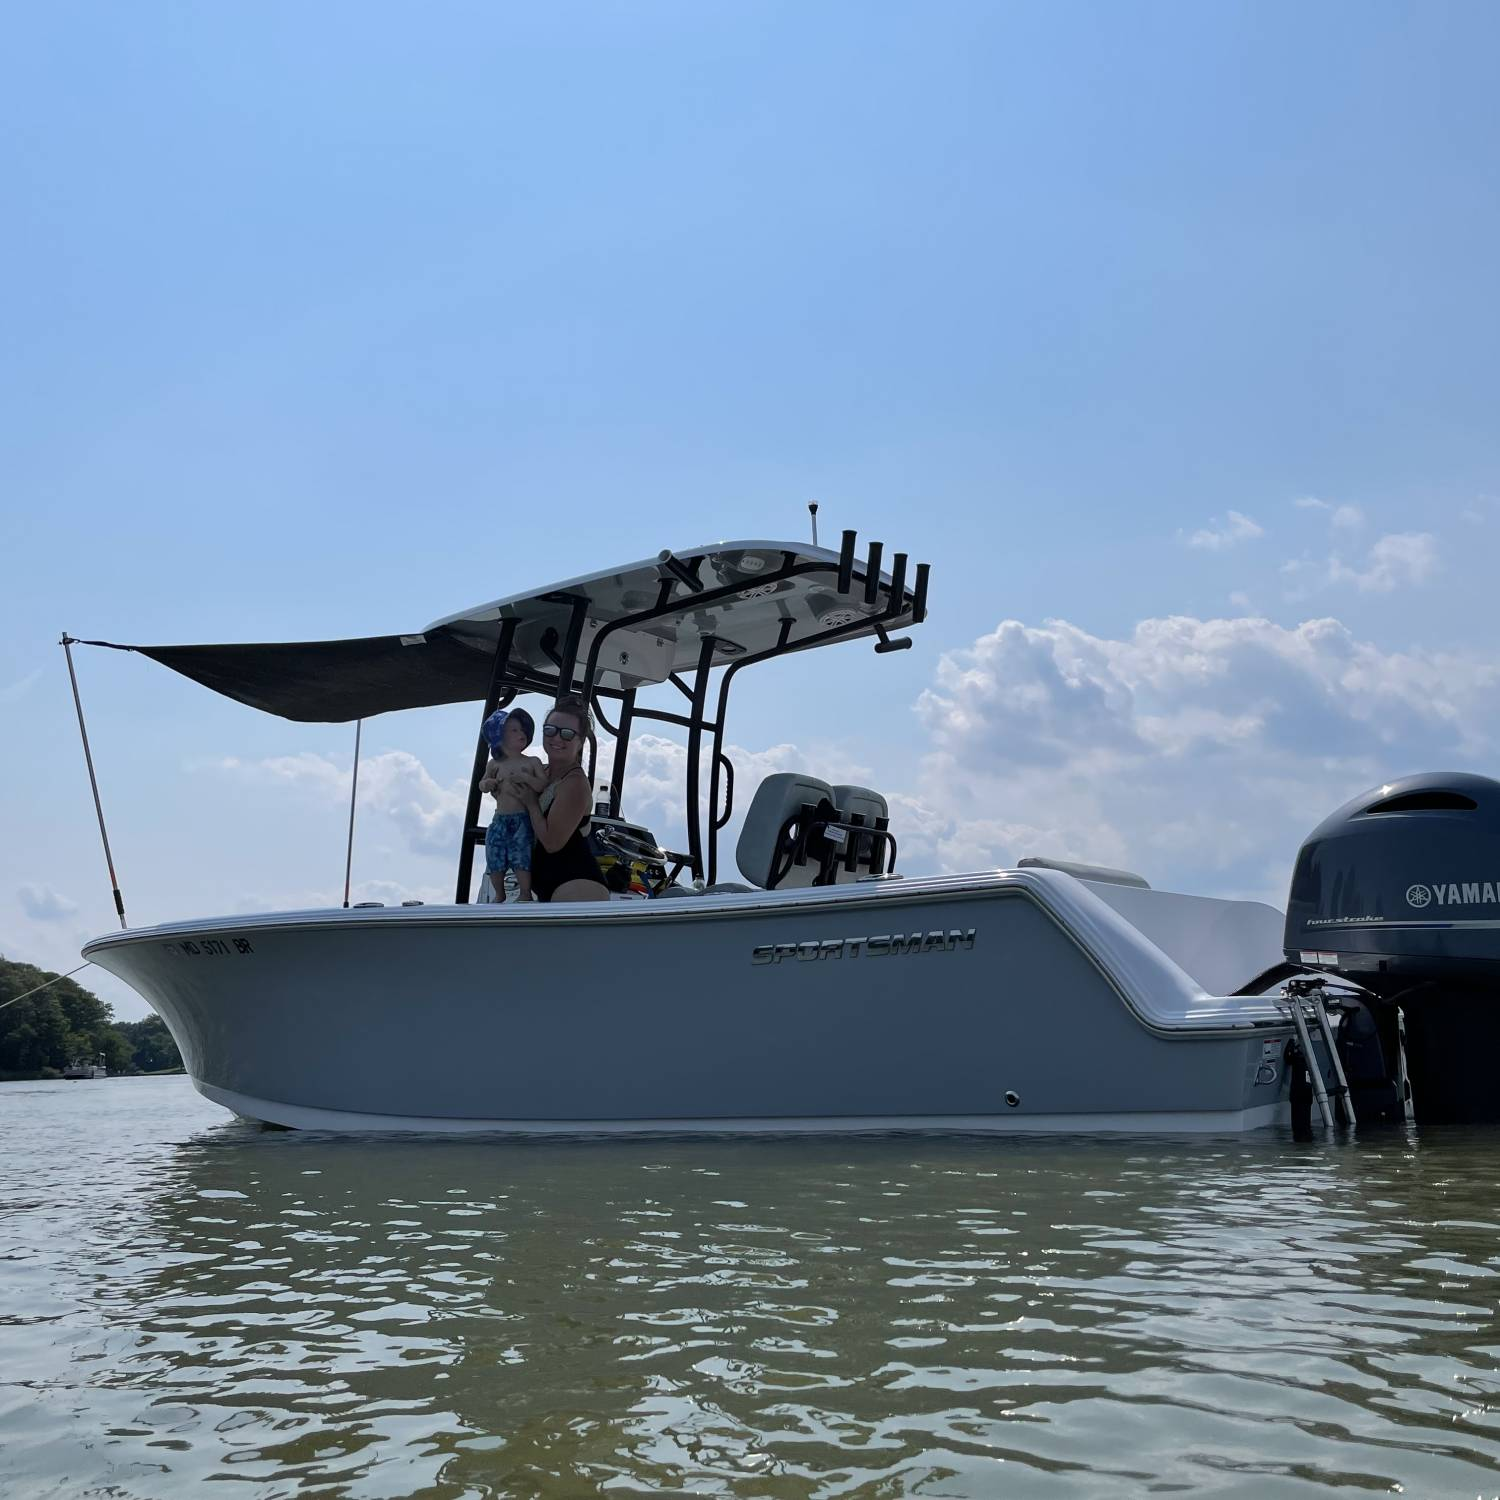 Title: Shady - On board their Sportsman Open 232 Center Console - Location: Sue Creek MD. Participating in the Photo Contest #SportsmanAugust2021